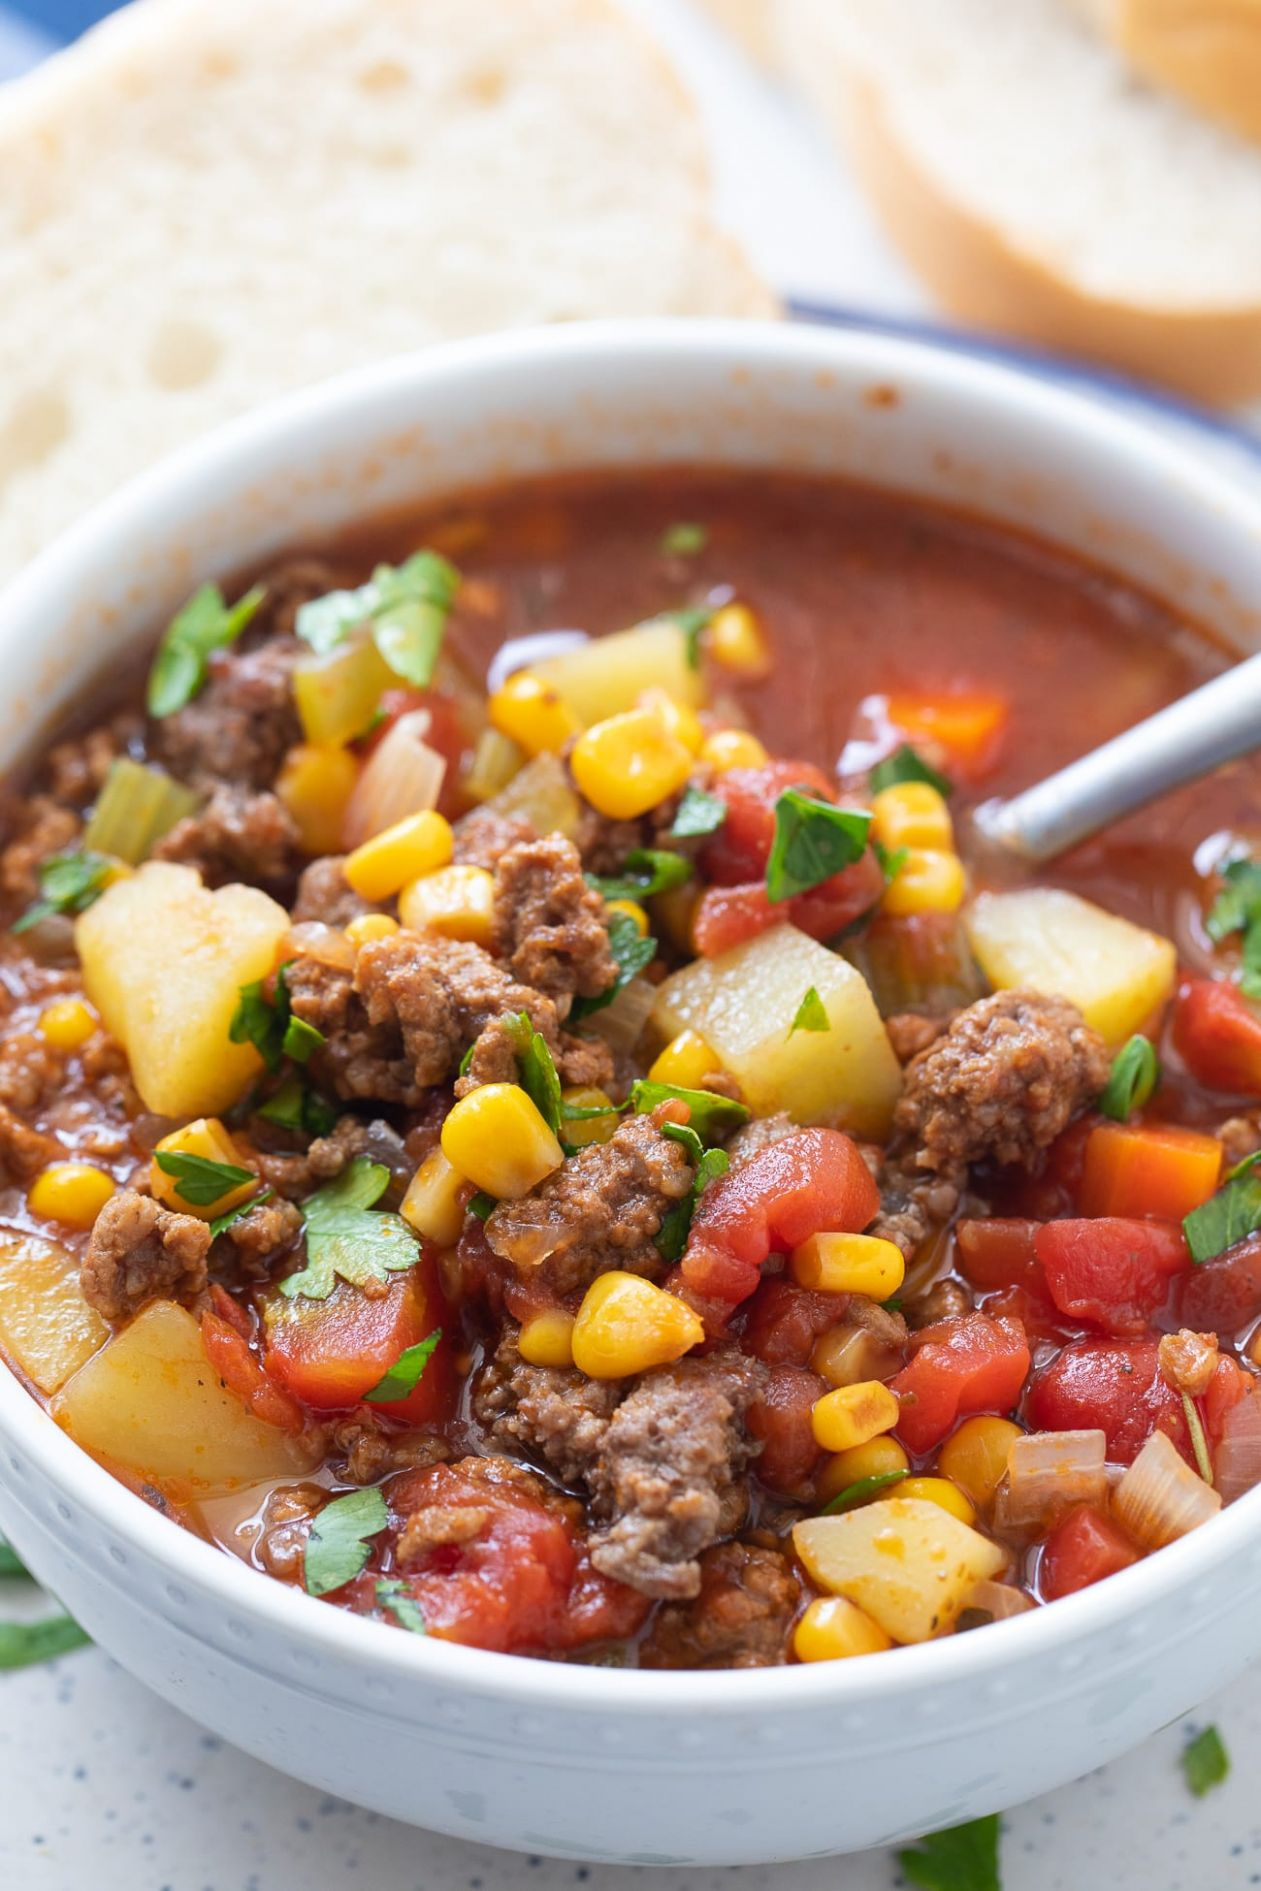 Easy Hamburger Soup Recipe (Ground Beef and Vegetable Soup!) - Soup Recipes Using Ground Beef